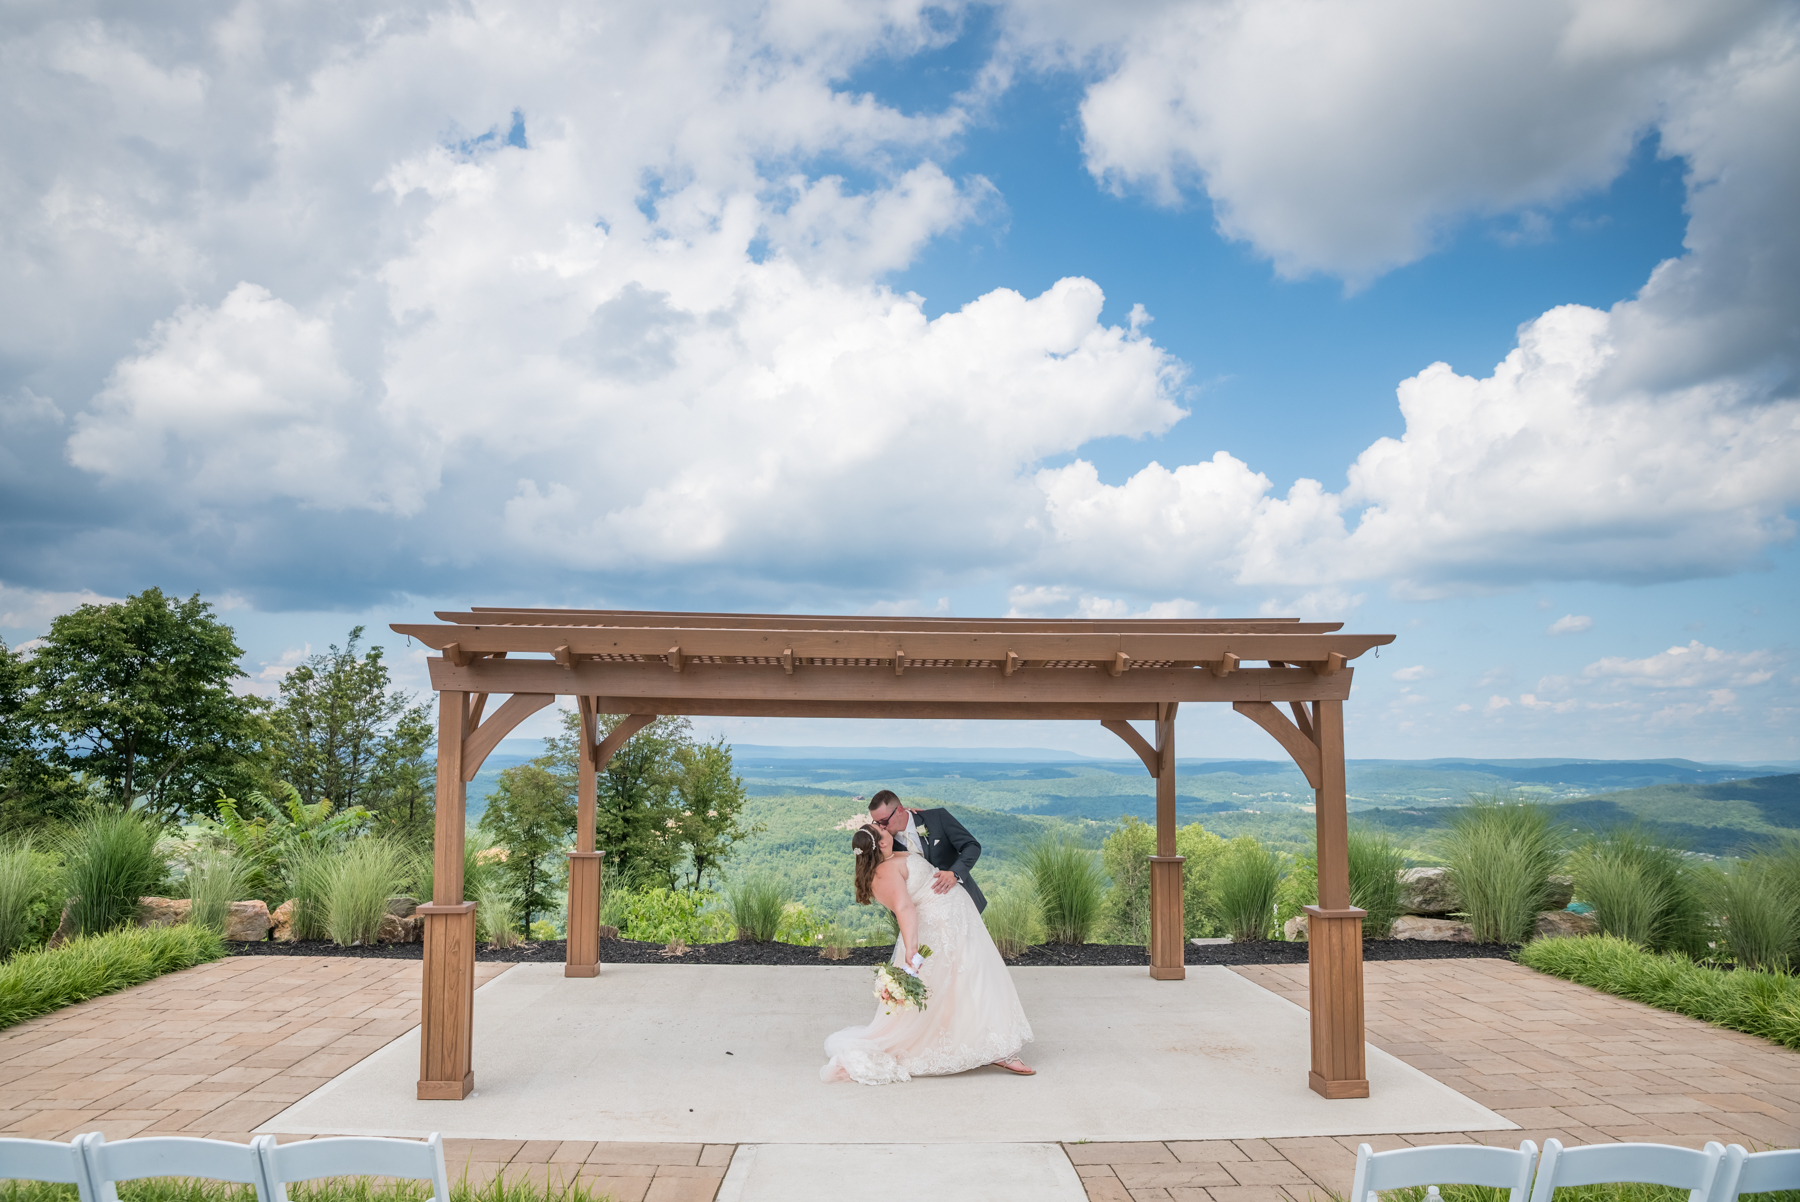 Samantha & Joe – Palmerton, PA